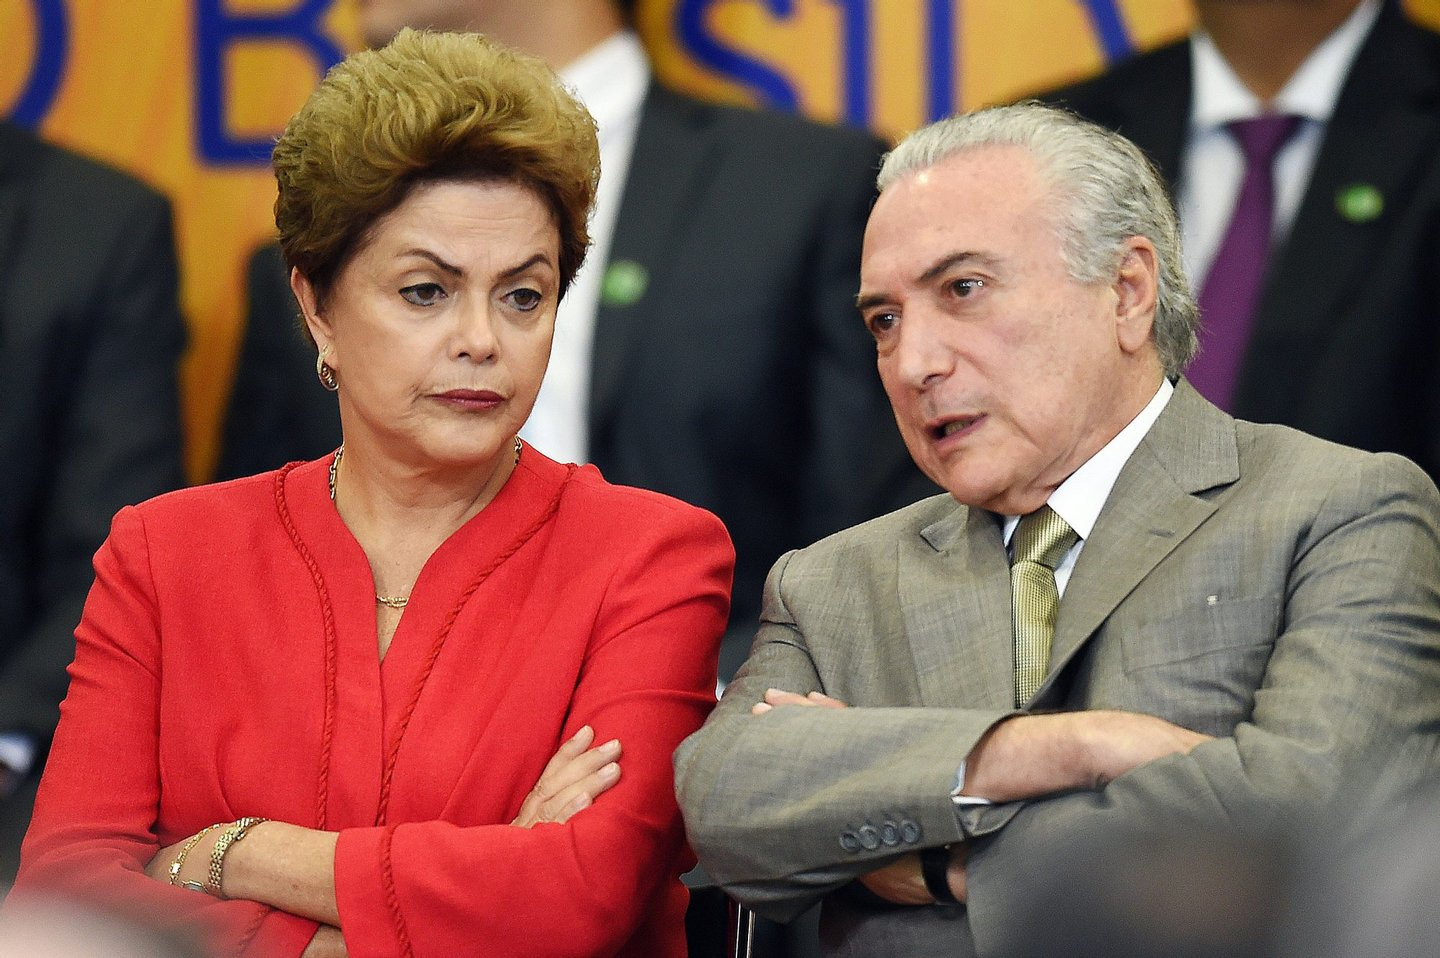 Brazilian President Dilma Rousseff and her vice President Michel Temer attend the launching ceremony of the Logistics Investment Program (LIP), at the Planalto Palace in Brasilia, on June 9, 2015. Brazil announced a $64-billion infrastructure spending package on Tuesday, hoping to revive its flagging economy with investment in highways, railroads, ports and airports. AFP PHOTO/EVARISTO SA (Photo credit should read EVARISTO SA/AFP/Getty Images)